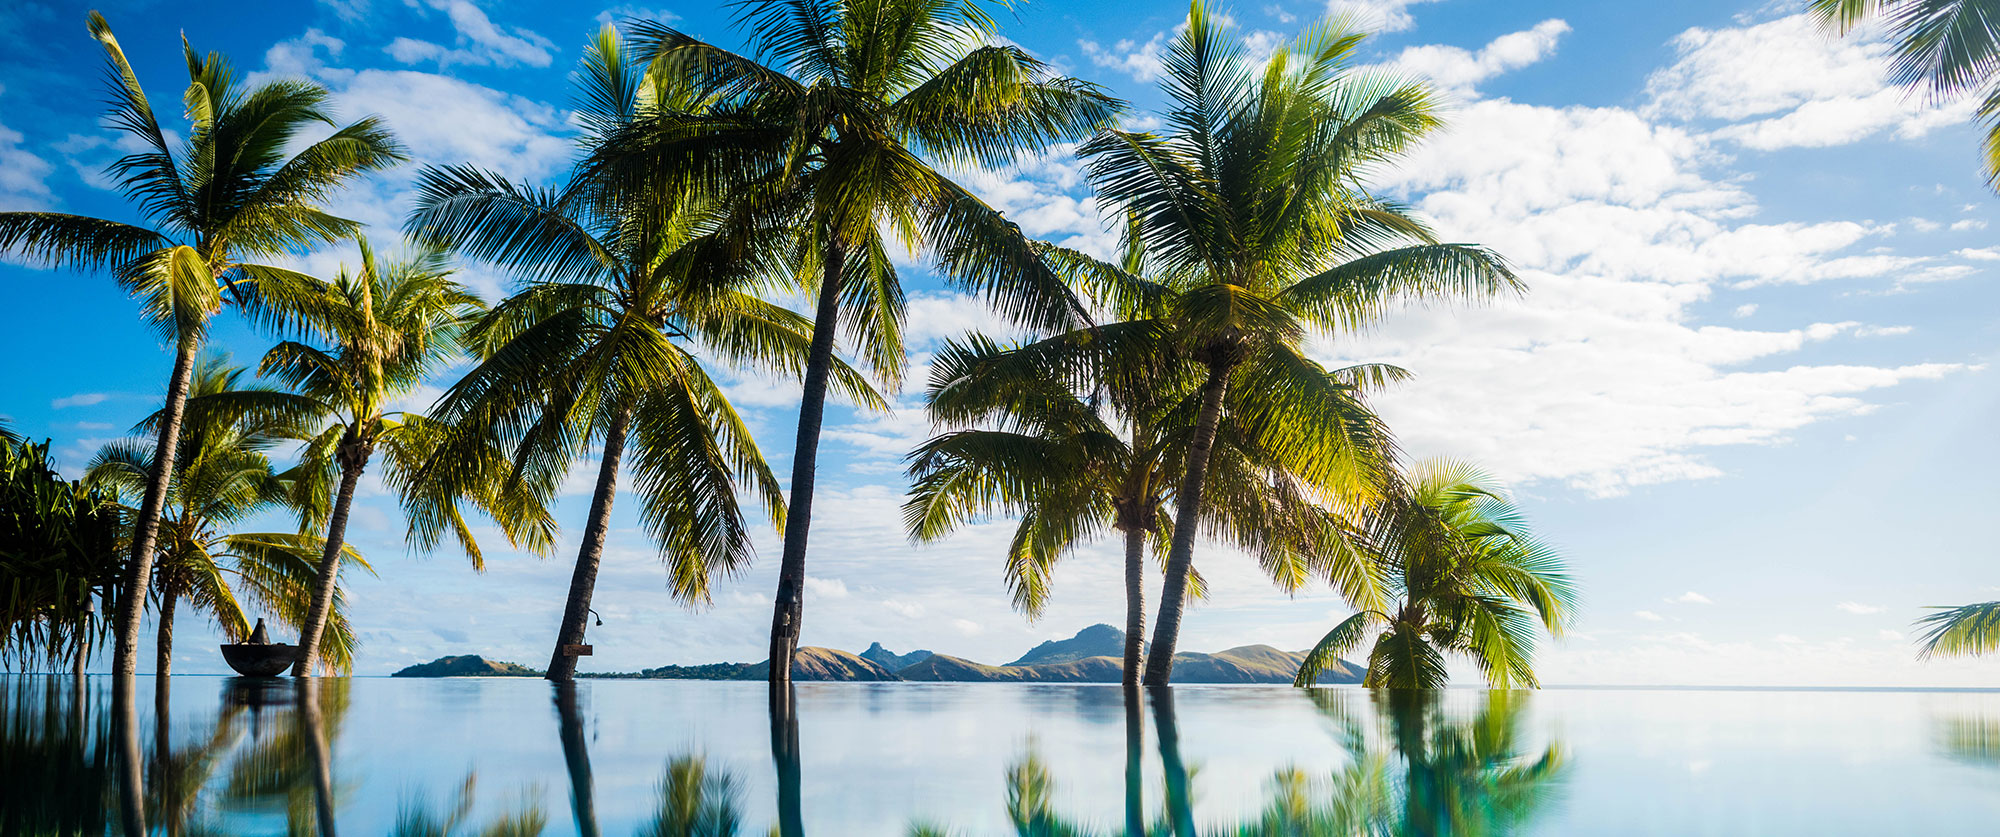 Fiji Islands Honeymoon: Plunge Pools, Beaches, Adventure